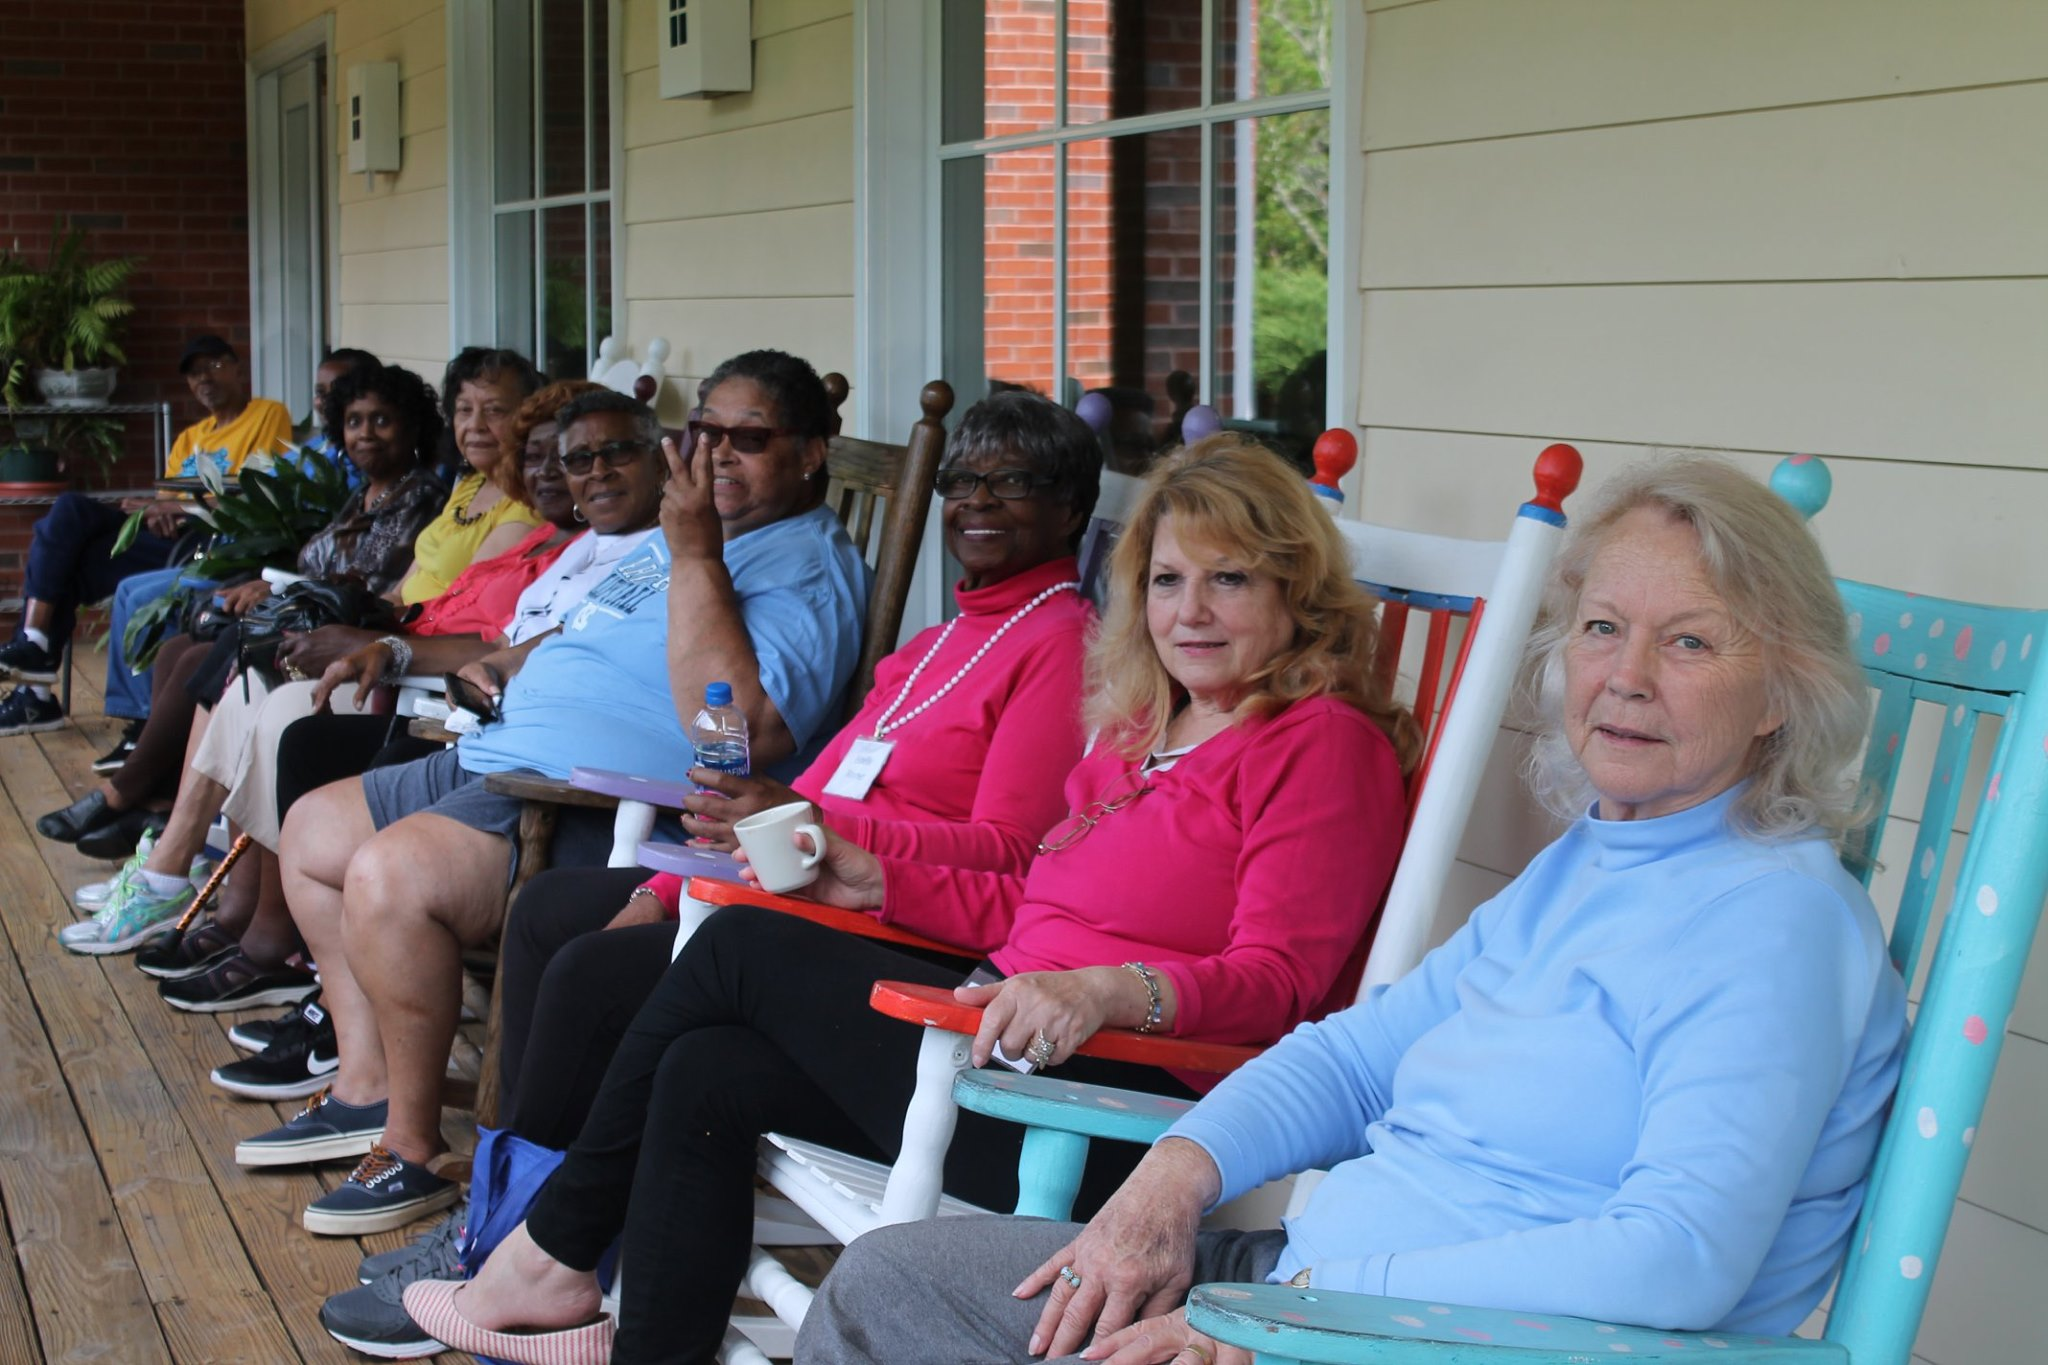 photo of a women at the Council on Aging Senior Center sitting in rocking chairs